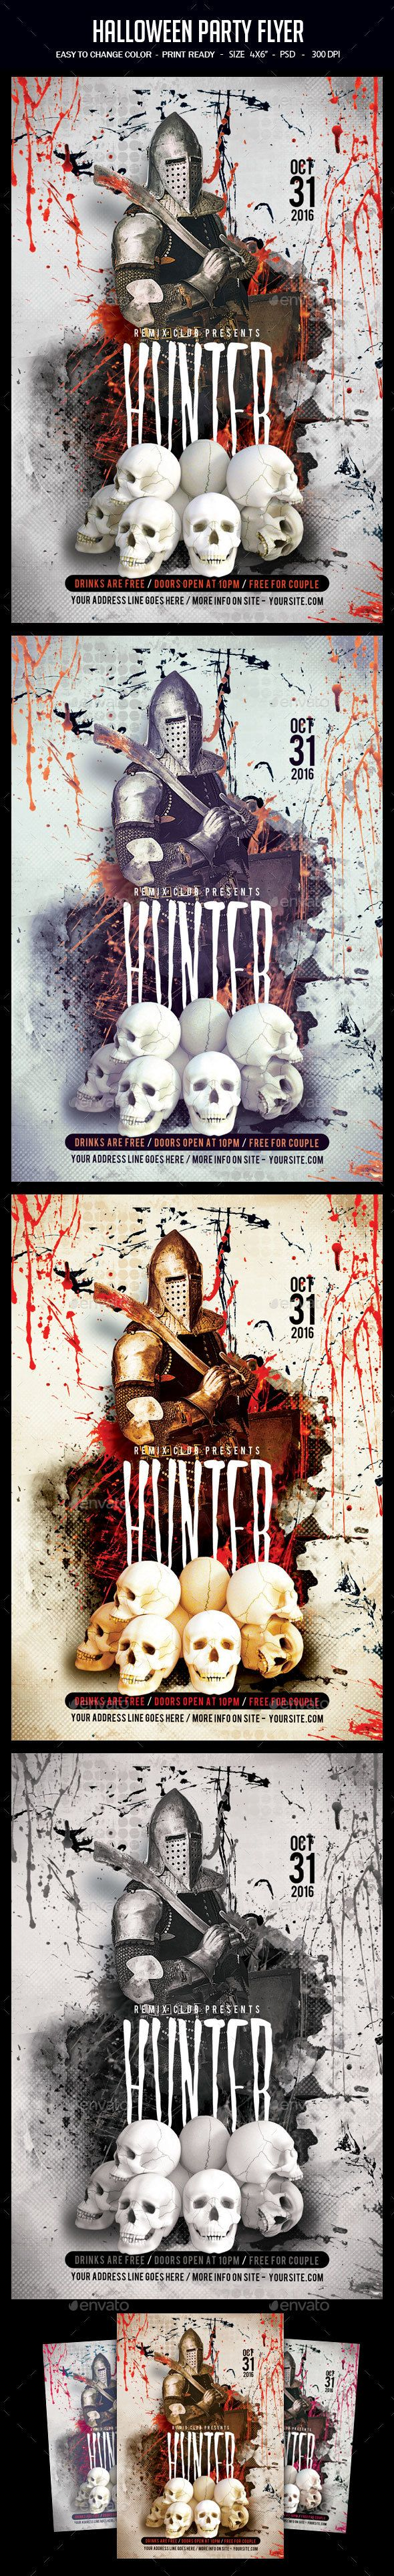 Halloween Party Flyer | Halloween party flyer, Party flyer and Psd ...